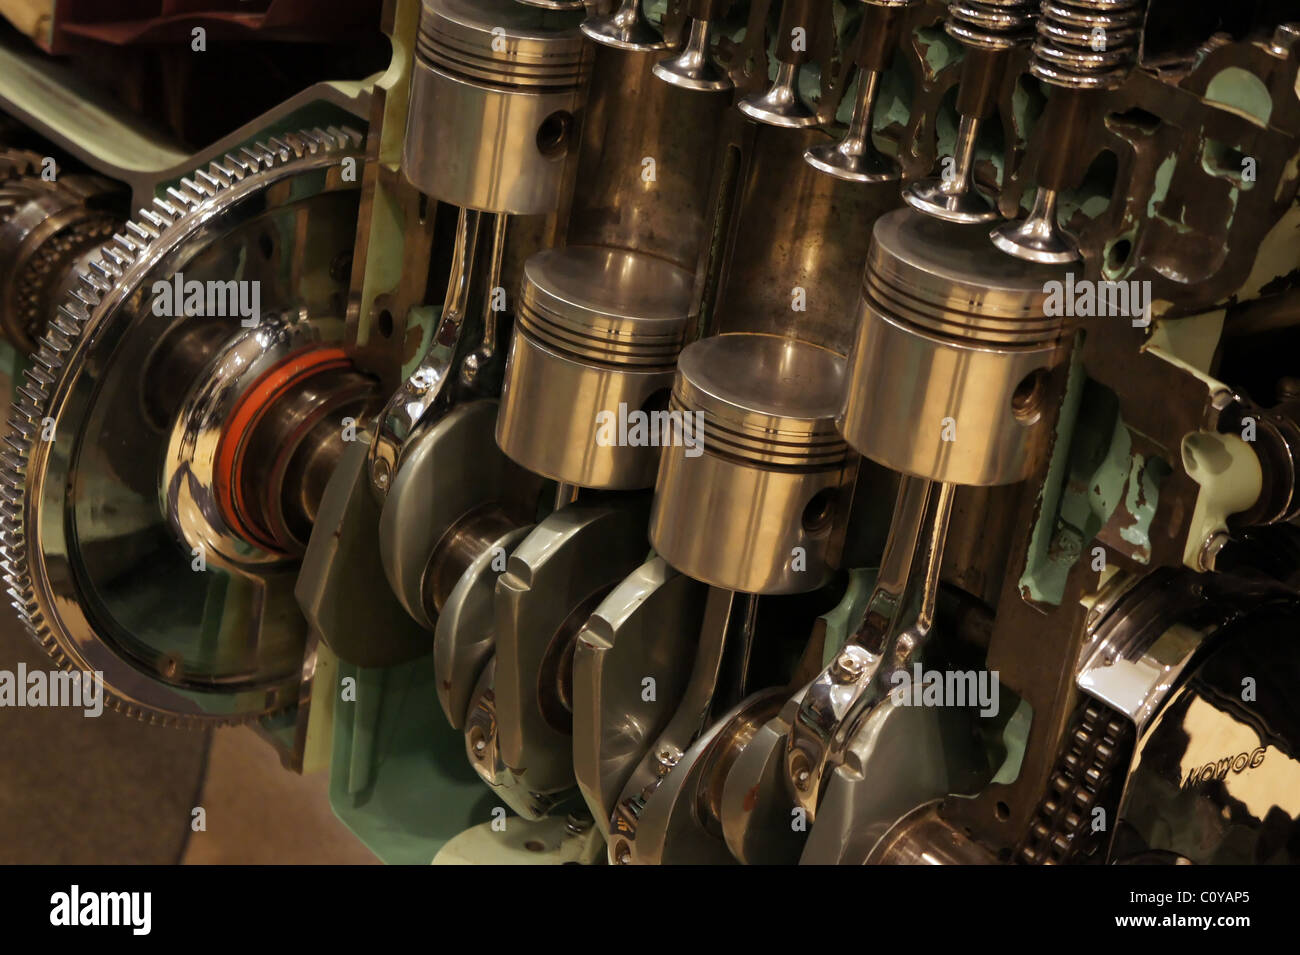 Internal Combustion Engine Stock Photos & Internal Combustion ...